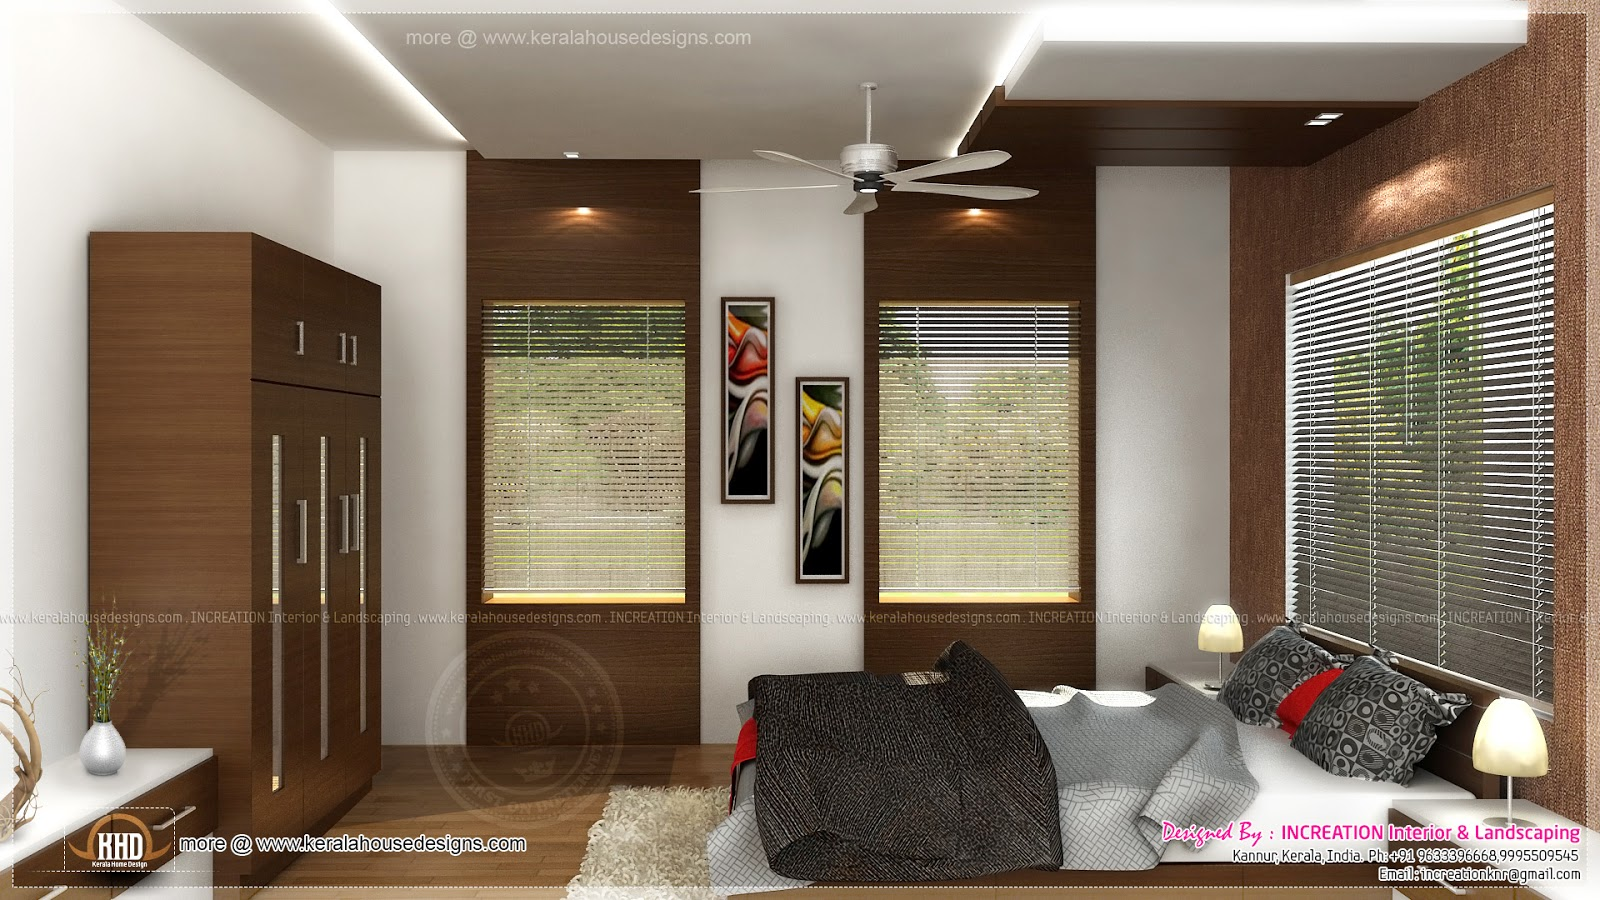 interior designs from kannur kerala kerala home design On interior design in kerala photos